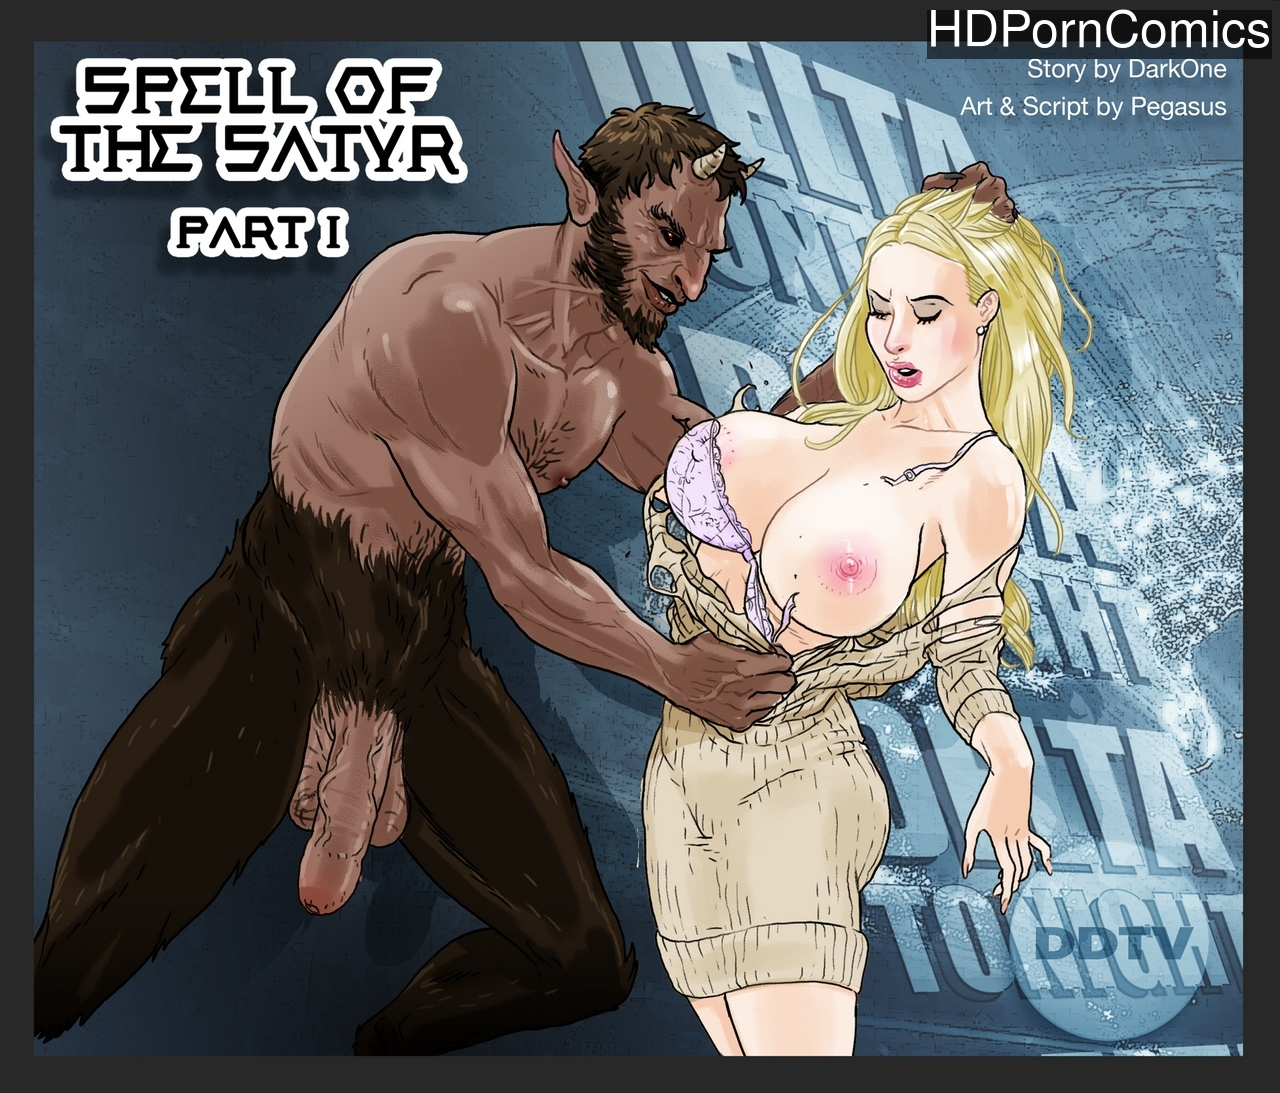 Spell-Of-The-Satyr-1 1 free porn comics